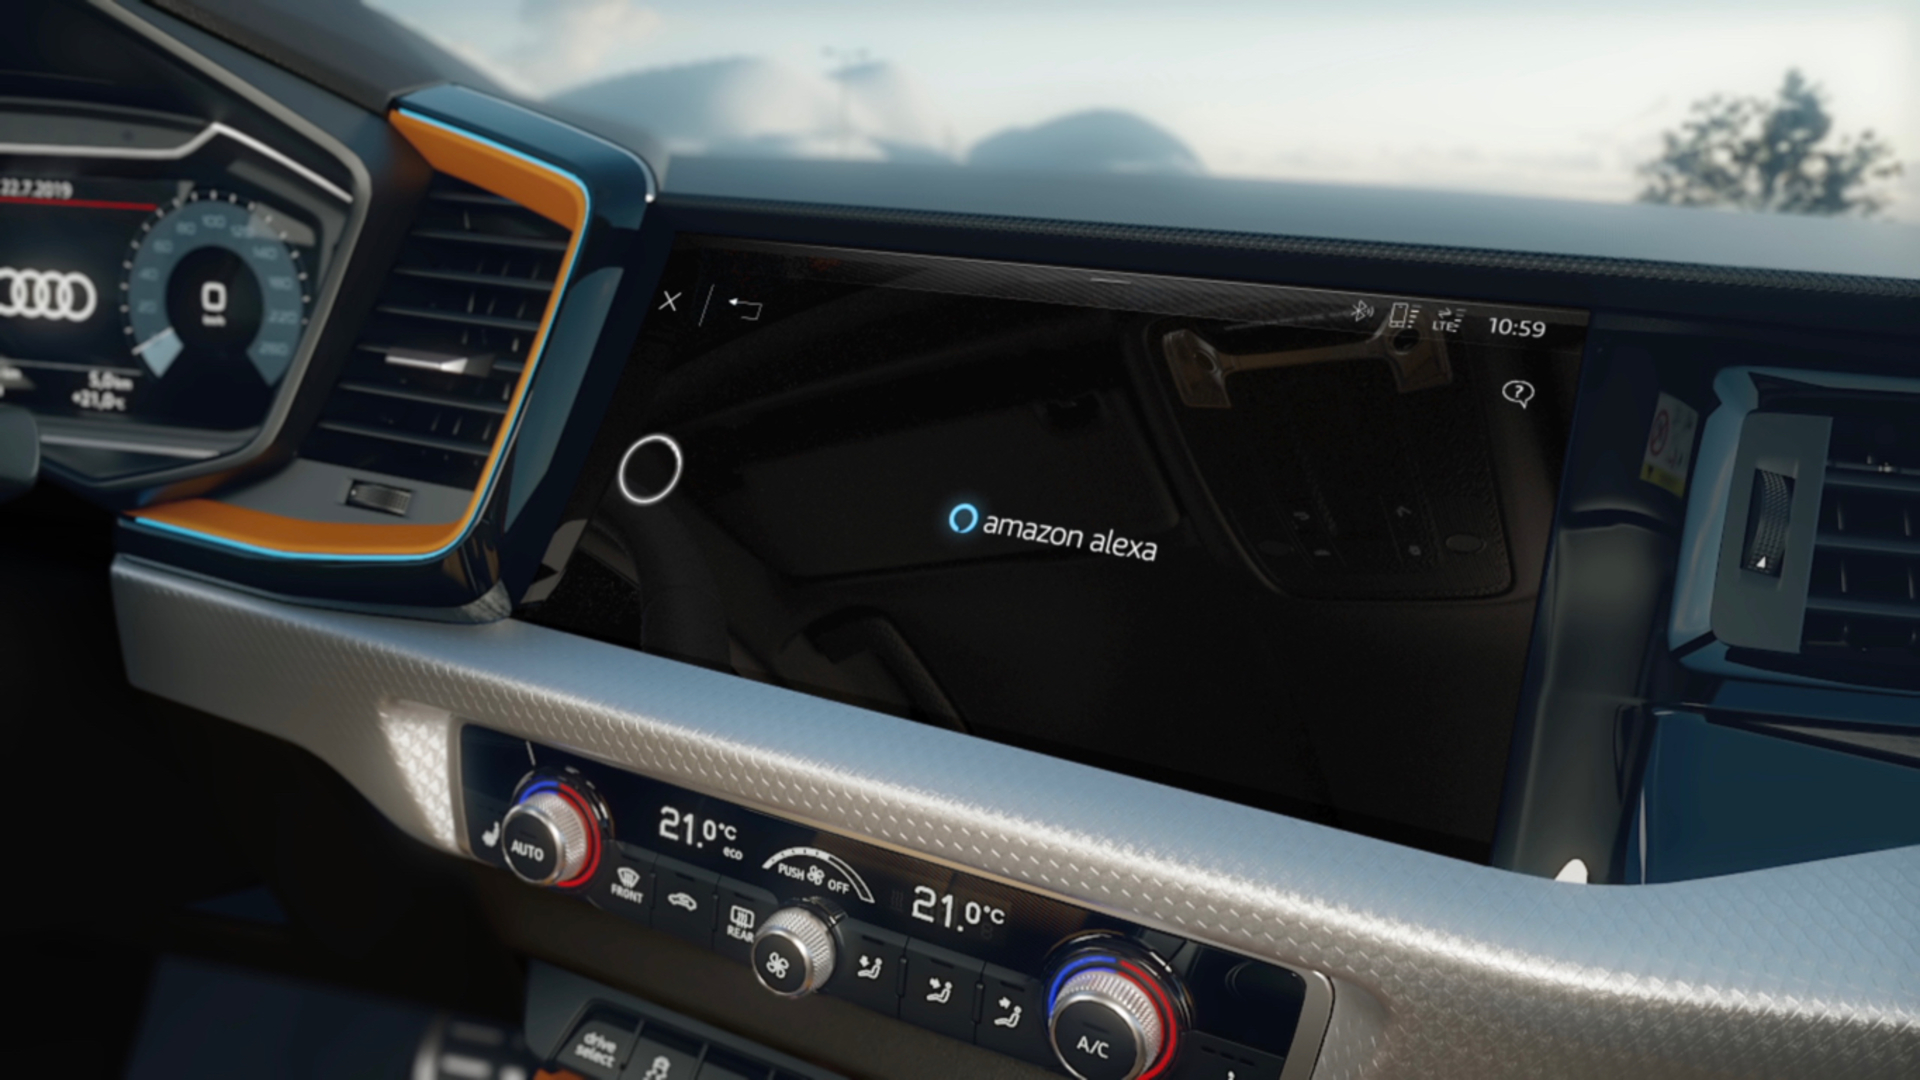 Audi A1 citycarver driver assistance systems and Alexa (Animation)